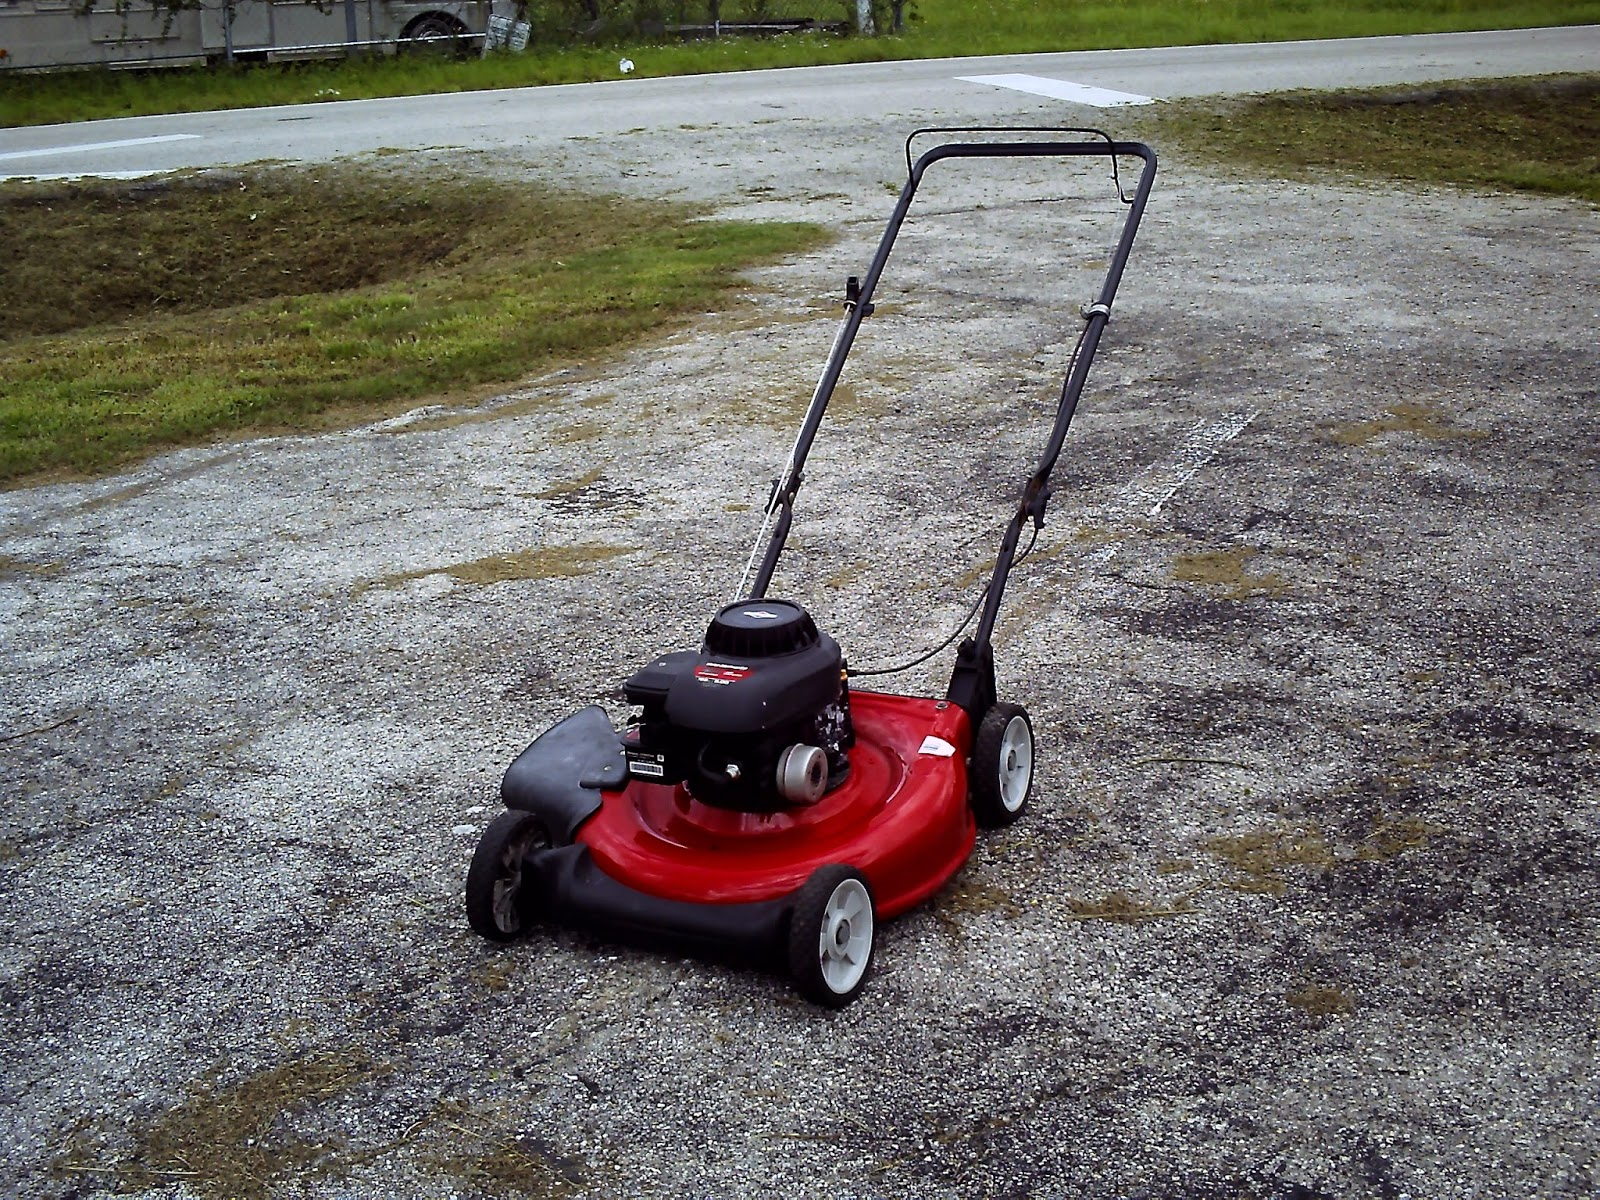 hight resolution of mtd 21 push mower rebuilt and resored to it s former glory has a briggs stratton engine with 5 horses to back it up excellent running working